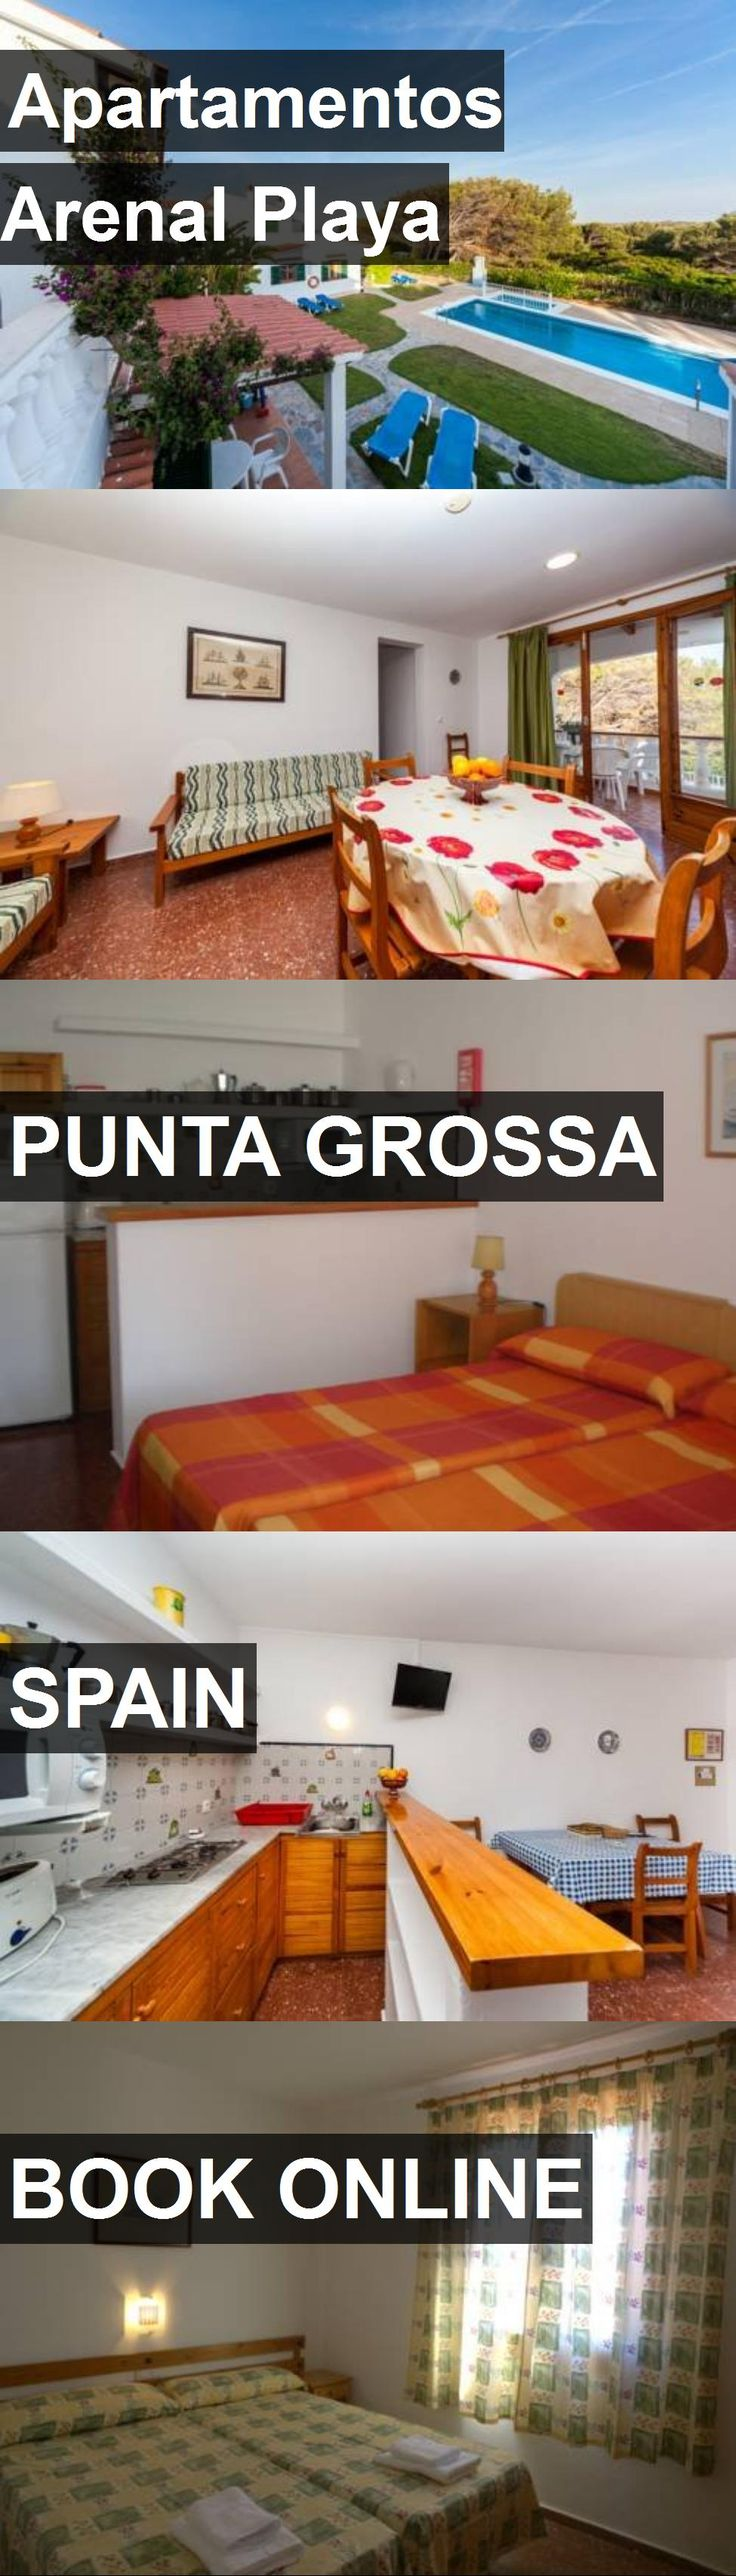 Hotel Apartamentos Arenal Playa in Punta Grossa, Spain. For more information, photos, reviews and best prices please follow the link. #Spain #PuntaGrossa #ApartamentosArenalPlaya #hotel #travel #vacation